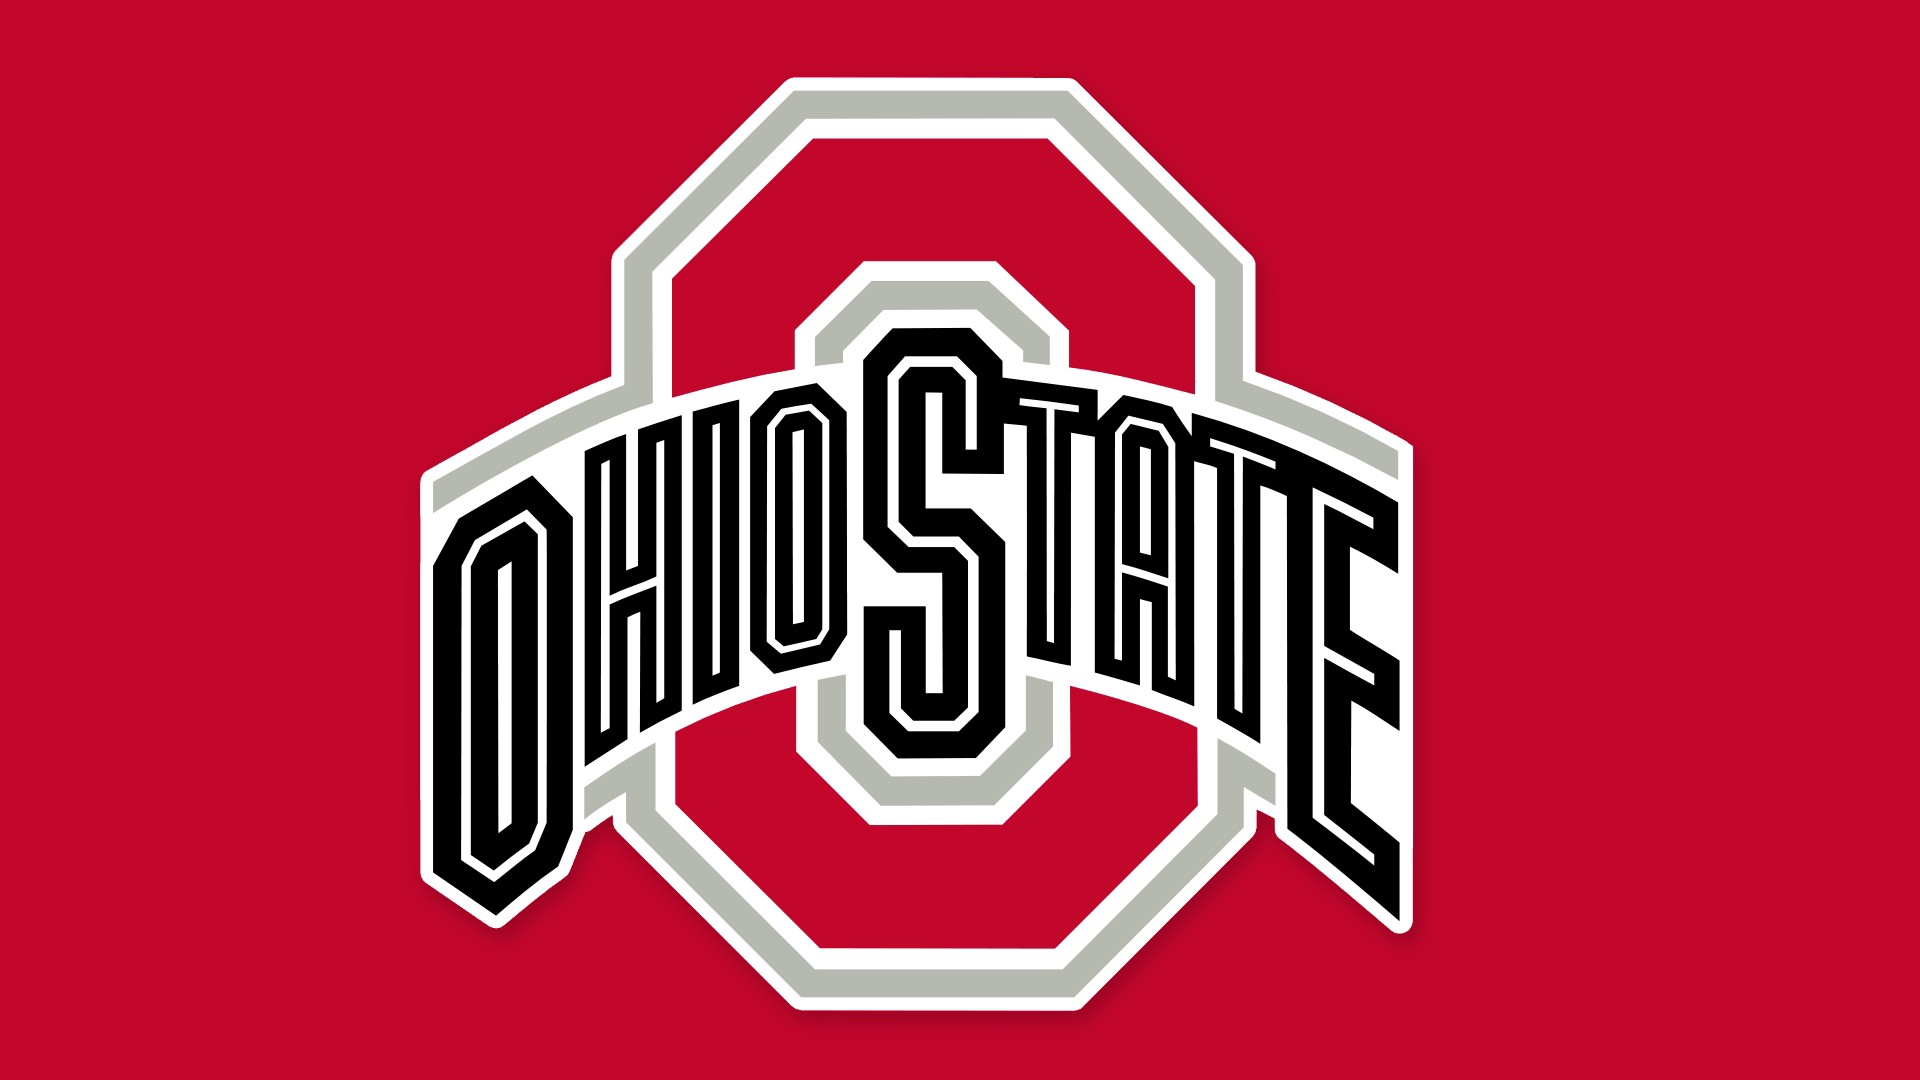 College Football Wallpapers Hd Ohio State Logo Wallpaper 2018 Wallpapers Hd